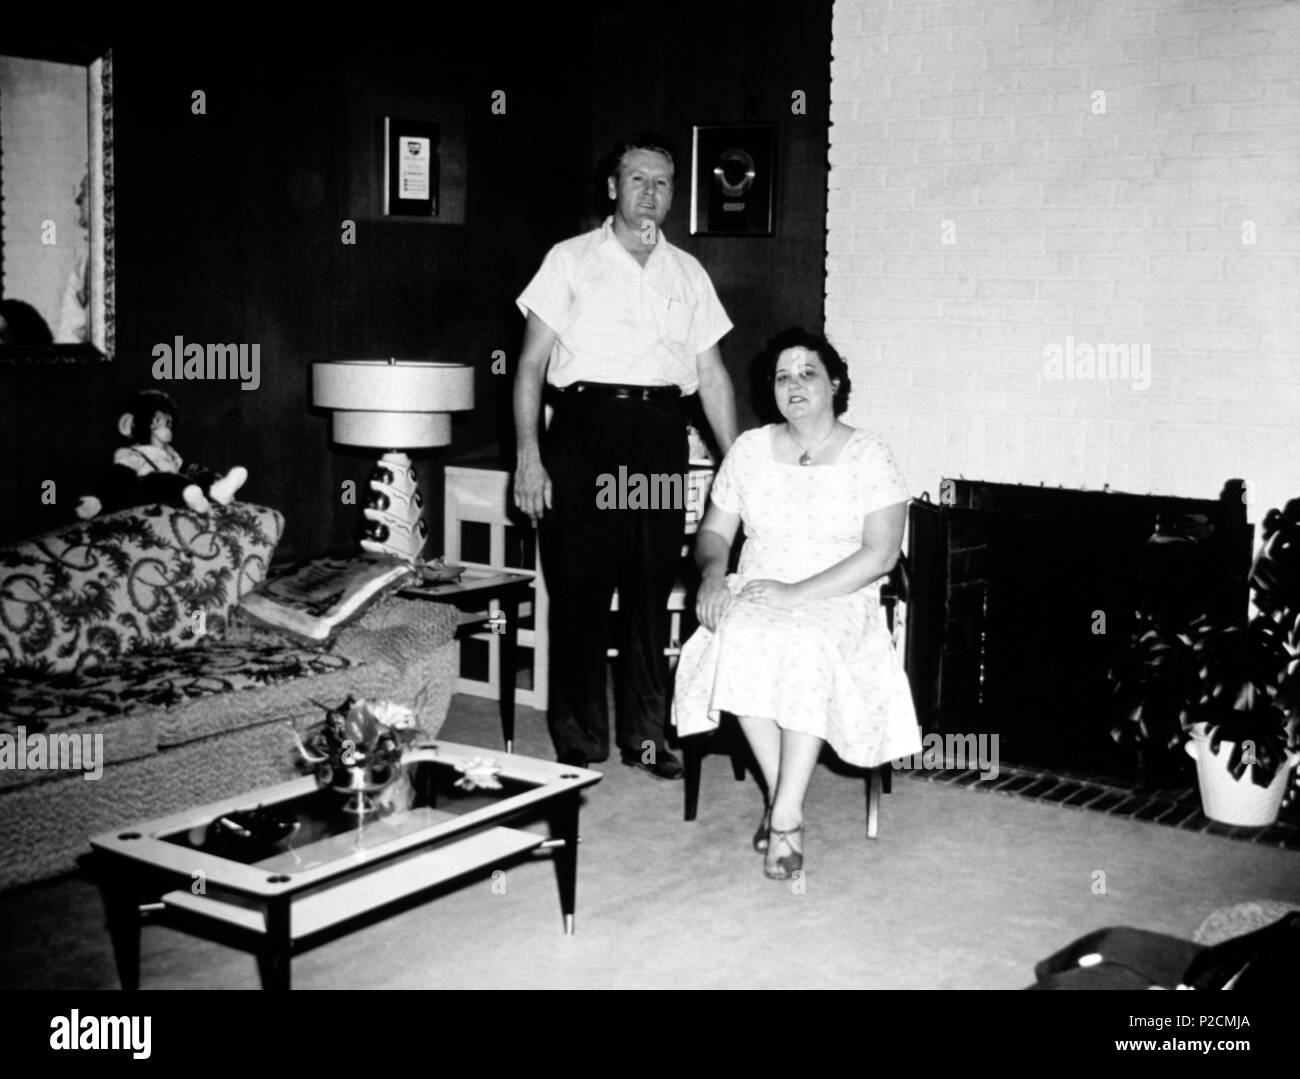 Elvis Presley mother, Gladys Presley, and his father Vernon Presley in their home at Audubon. Stock Photo